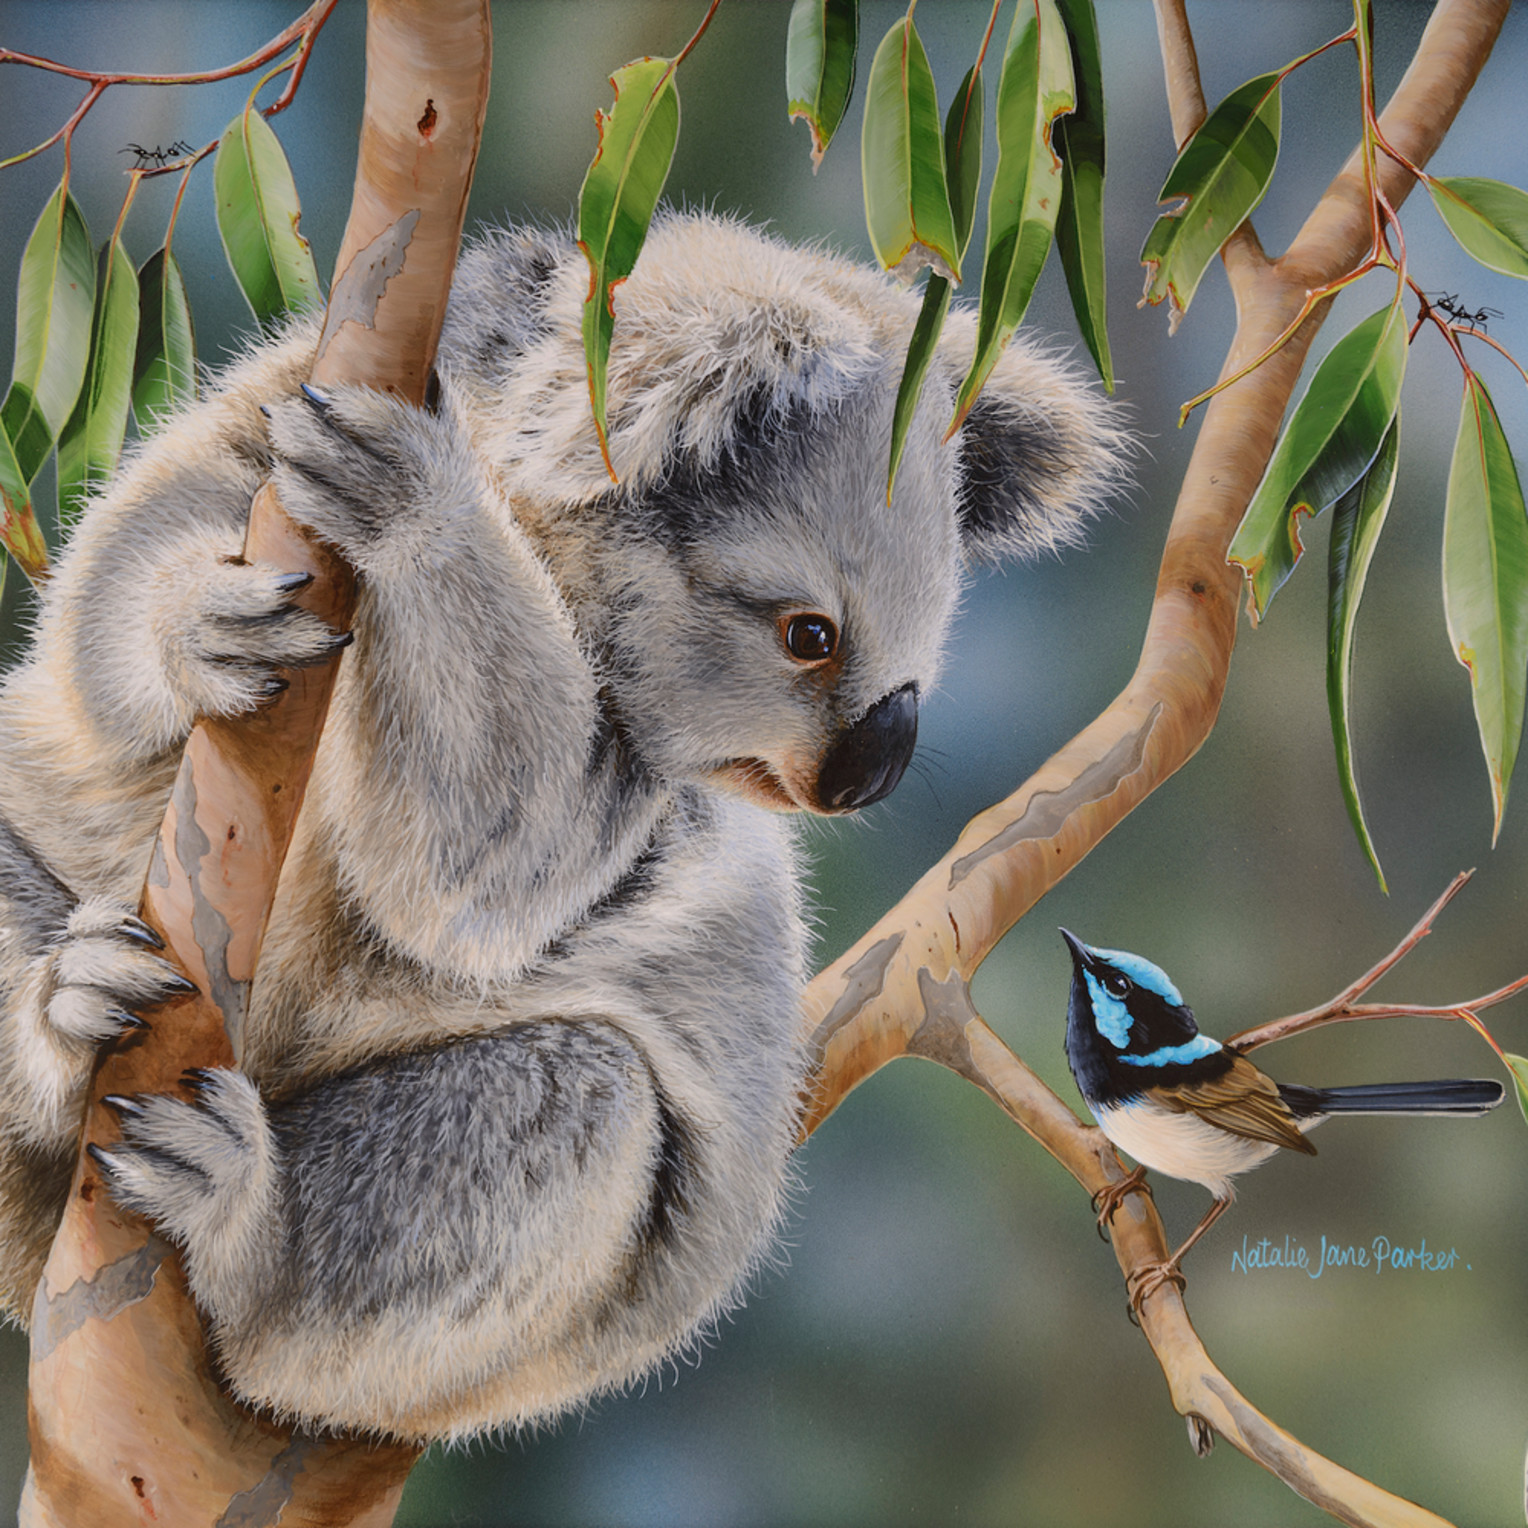 Aussie greeting   juvenile koala and superb fairy wren natalie jane parker australian native wildlife fycueq